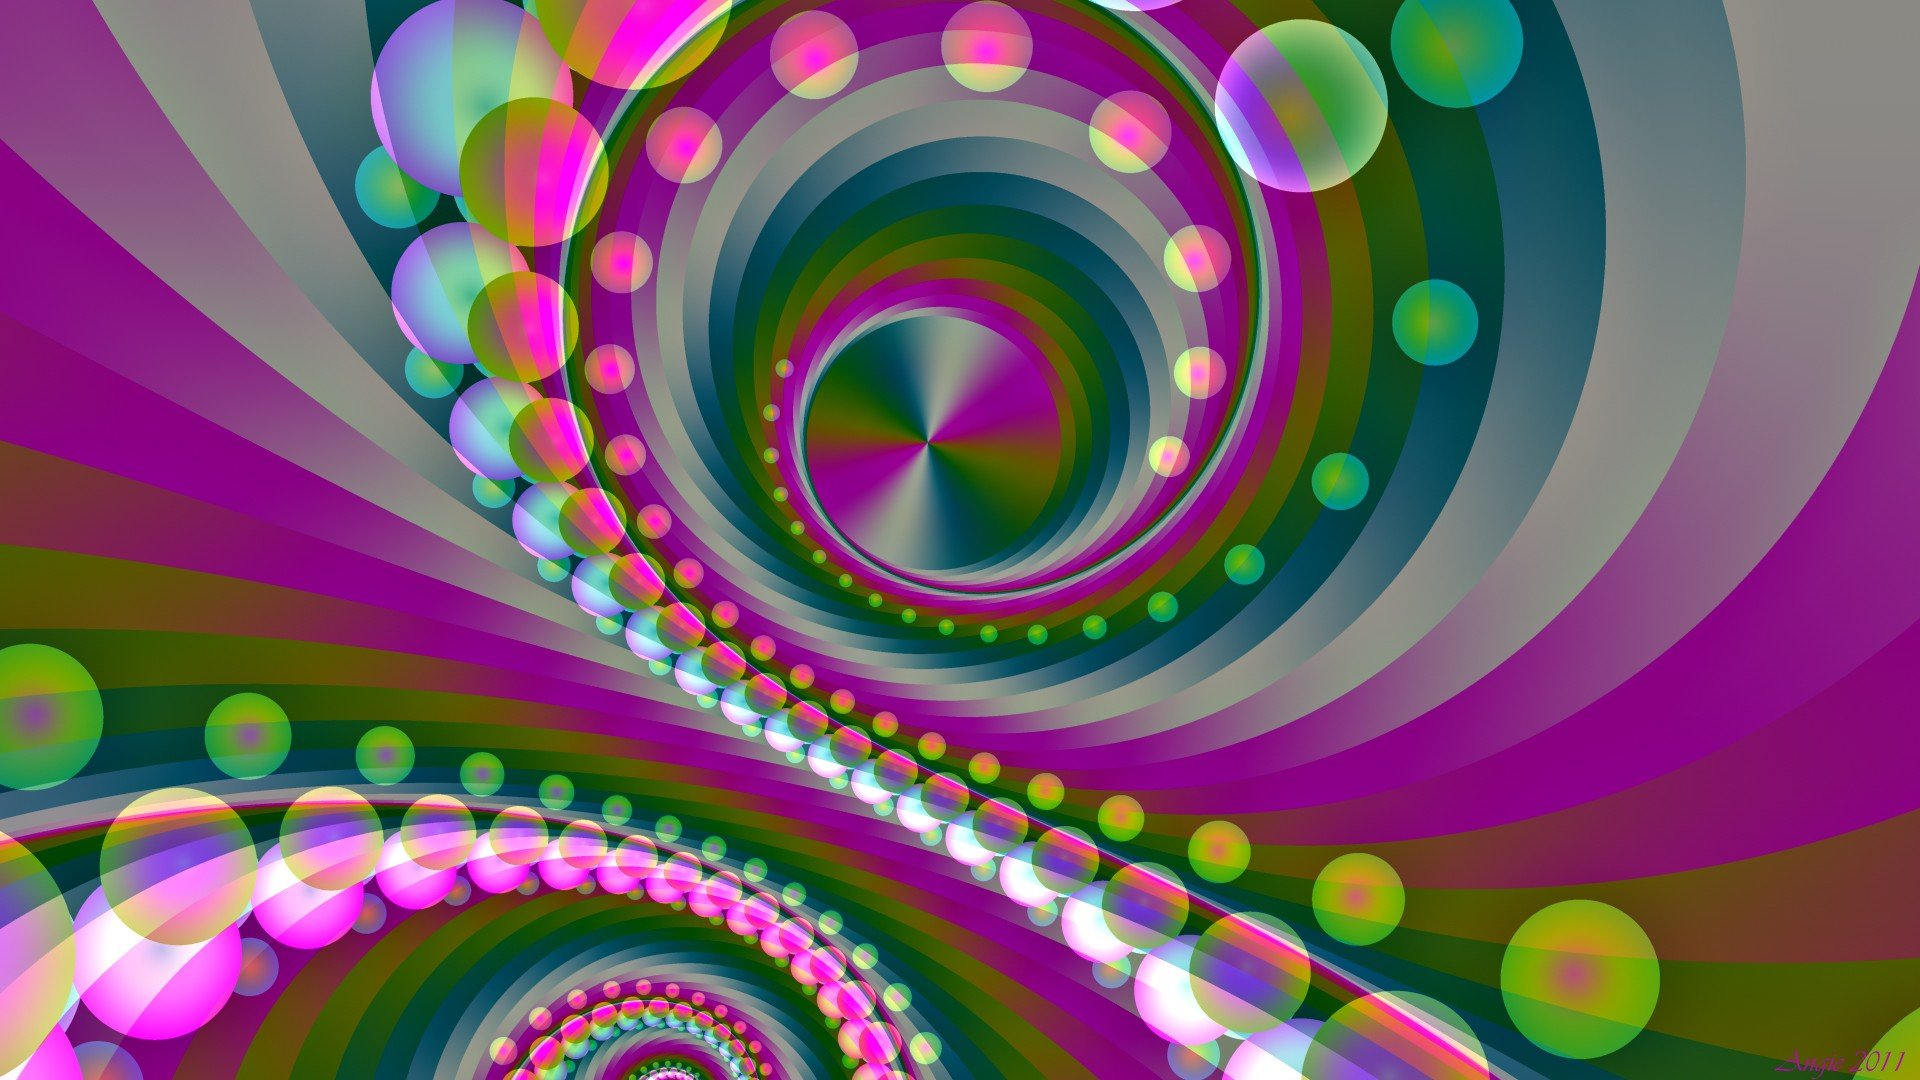 3d Rainbow Psychedeli Wallpaper Abstract Multicolor Patterns Psychedelic Digital Art